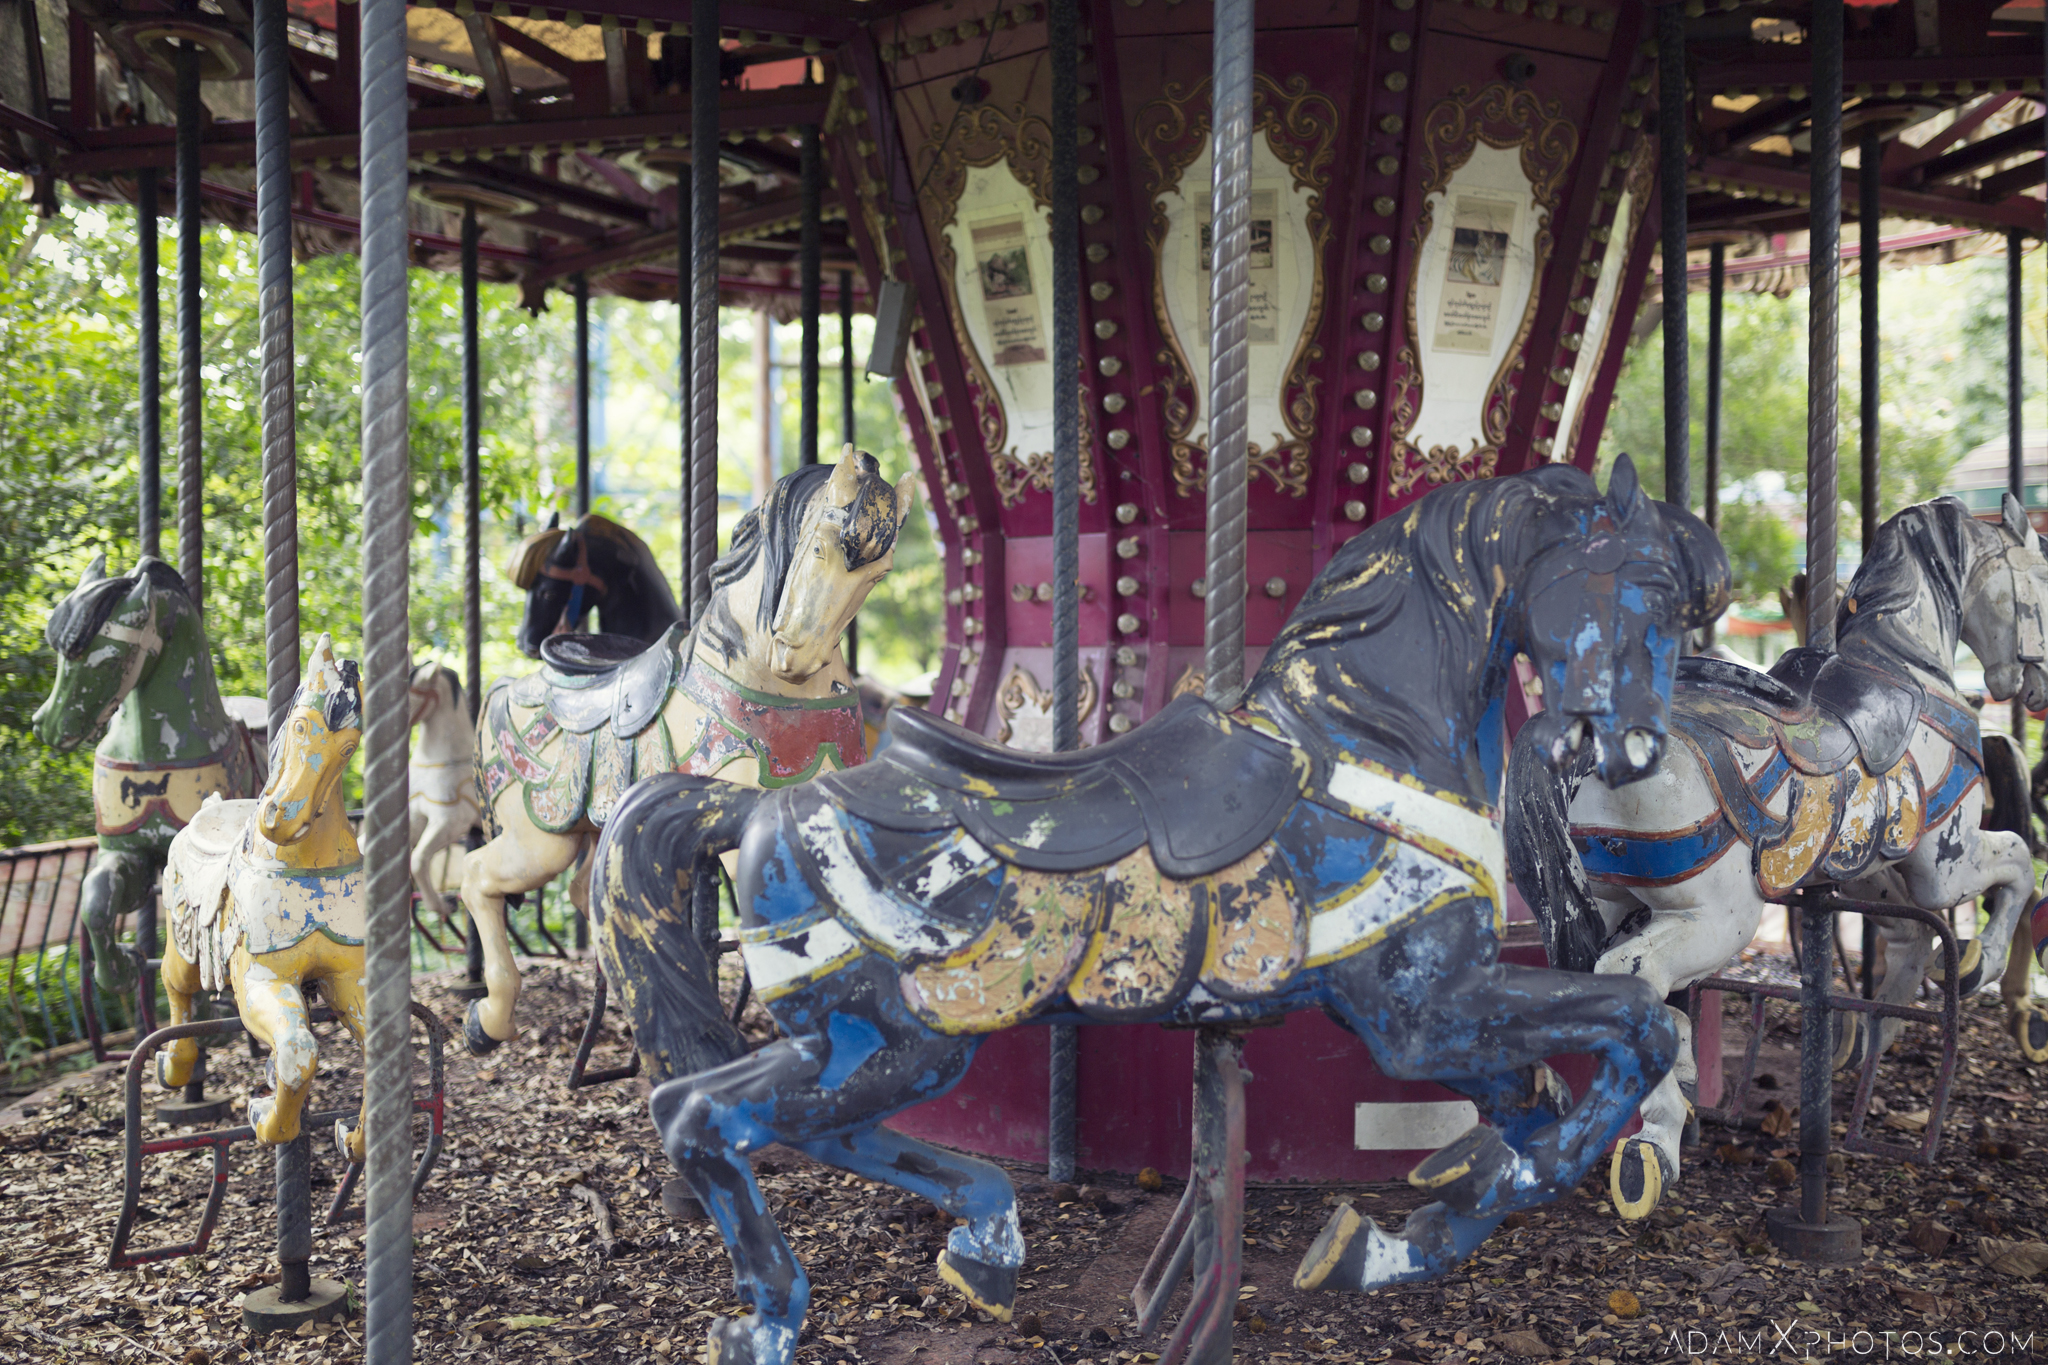 Horses carousel ride Happy World Theme Park Amusement Park Fairground Myanmar Burma Yangon Rangoon Urbex Adam X Urban Exploration Access 2016 Abandoned decay lost forgotten derelict location creepy haunting eerie